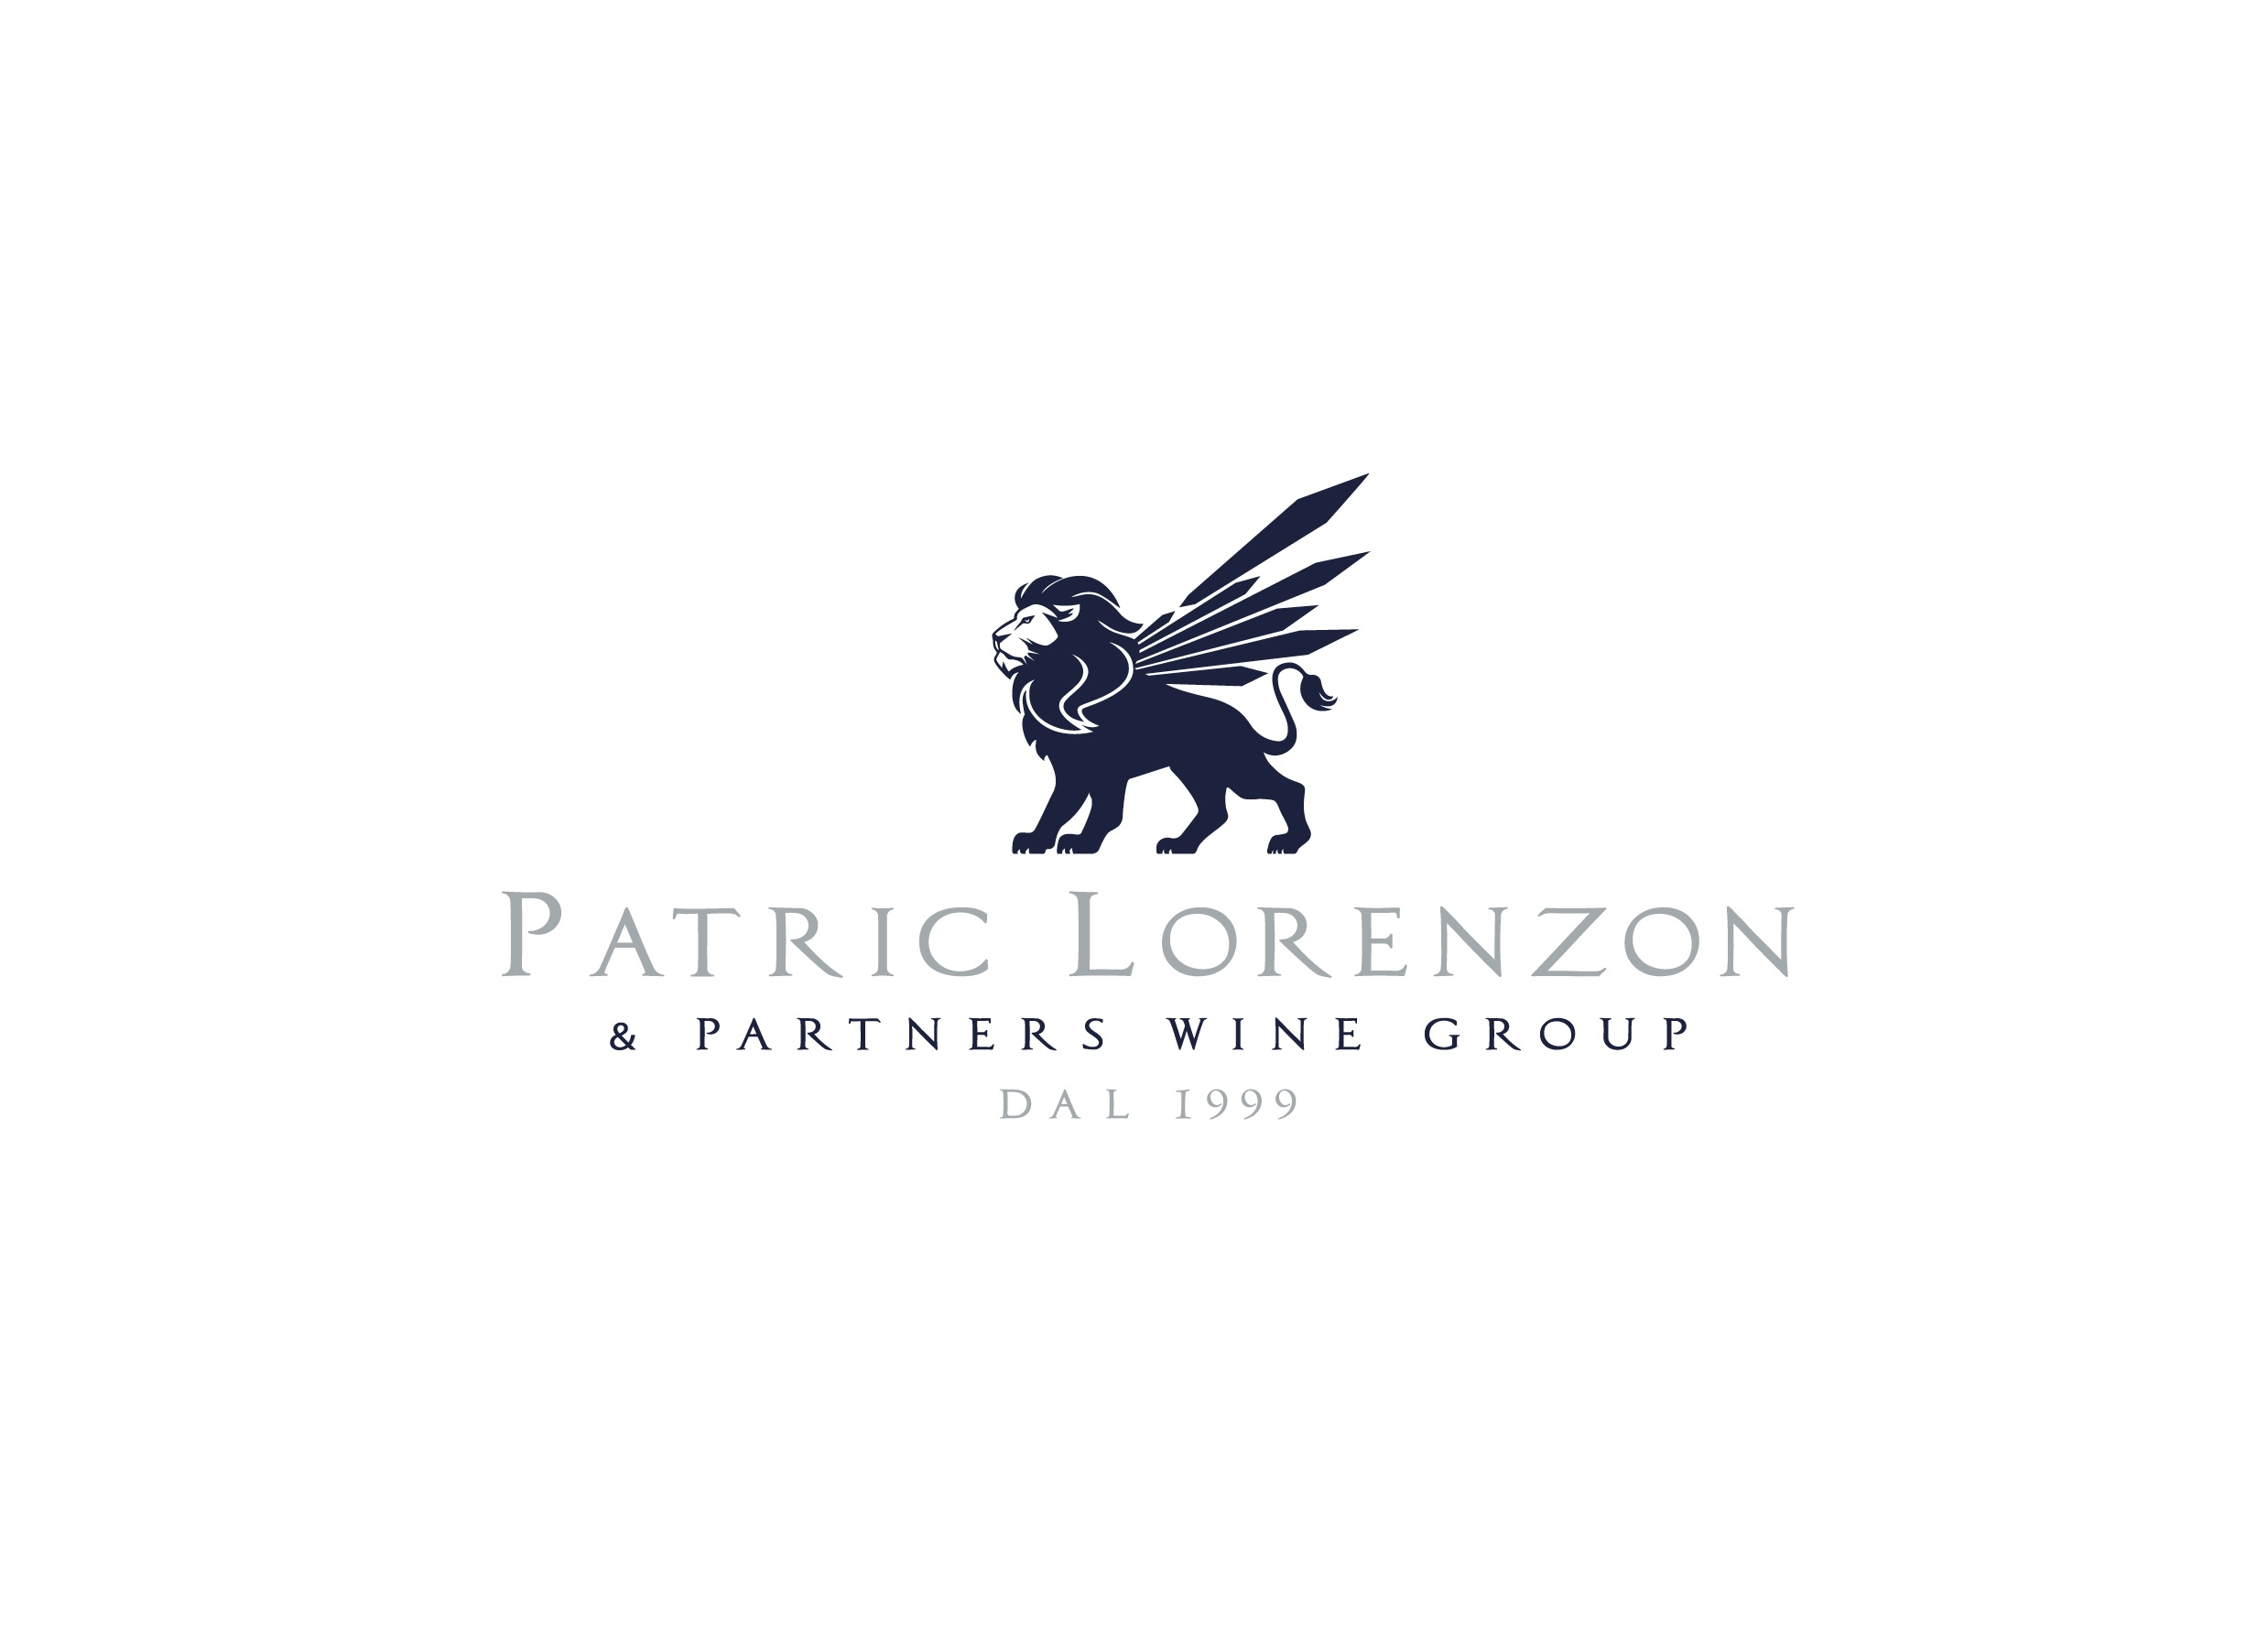 Patric Lorenzon & Partners